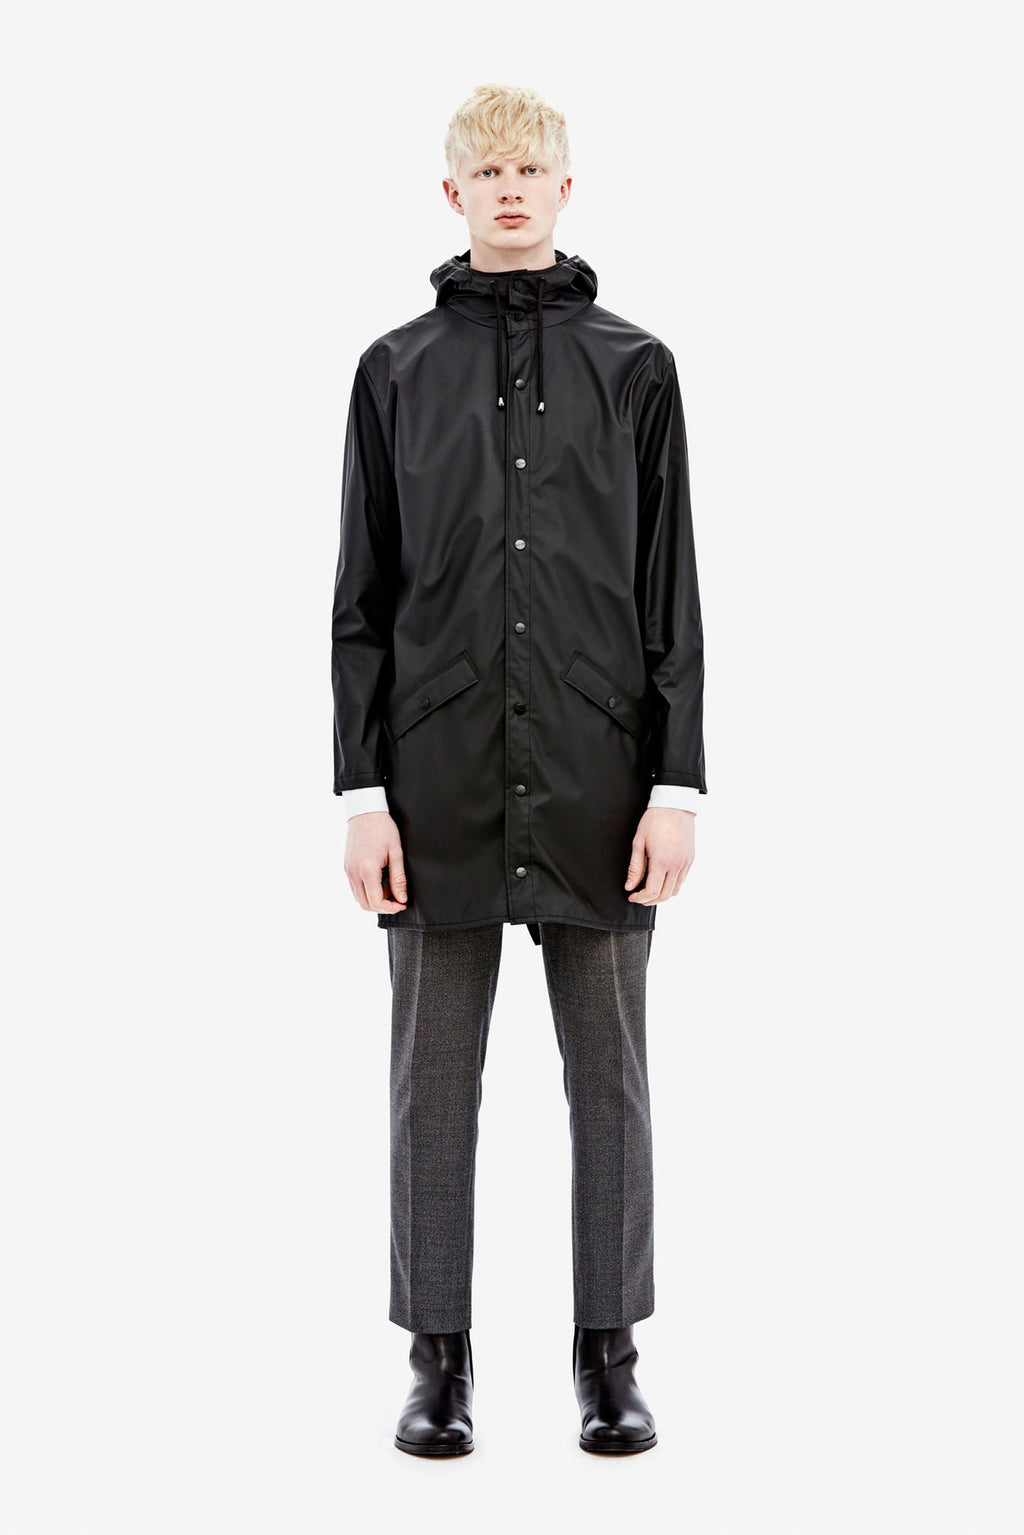 Rains Long Black Jacket - The Mercantile London